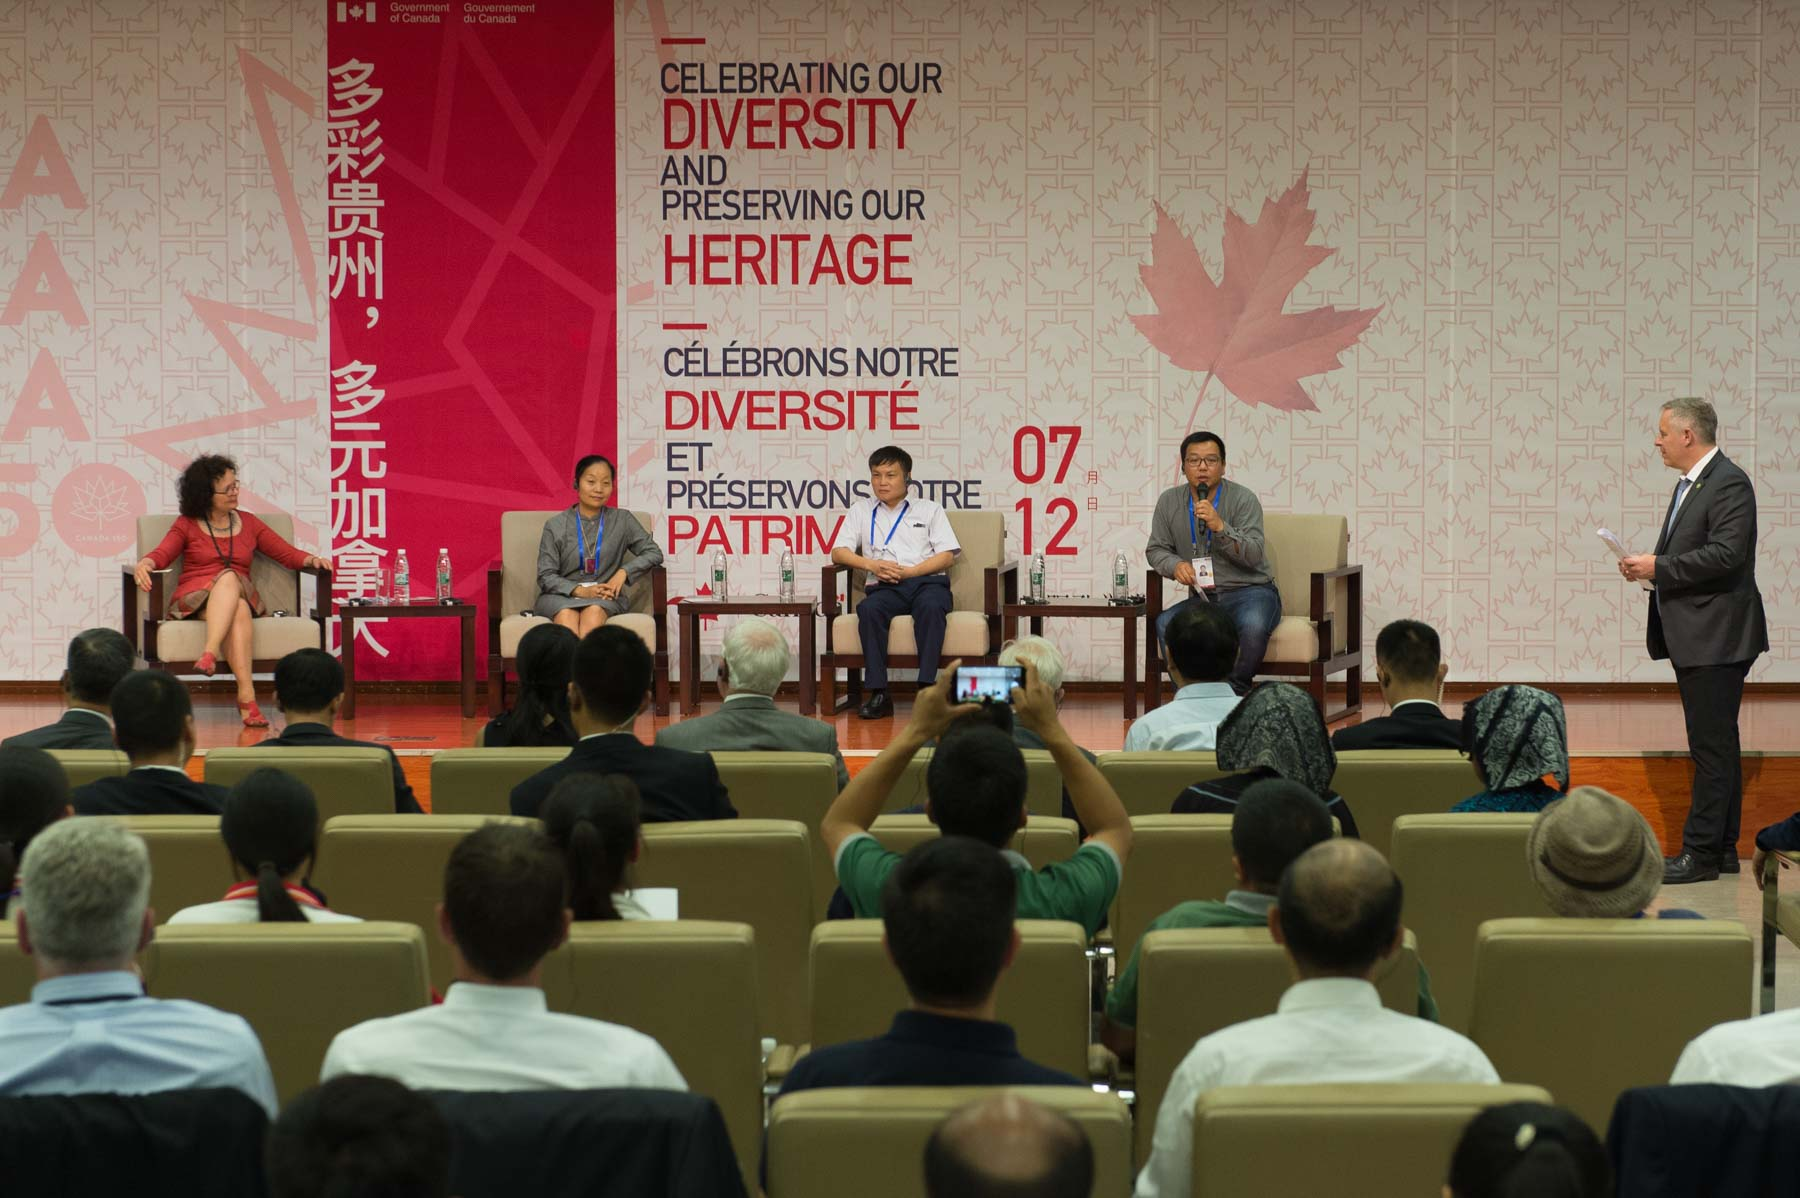 Afterwards, a group of panellists, including Canadian delegate Manon Barbeau, Founder, Director General and Artistic Director of Wapikoni Mobile, discussed themes of relevance to Chinese ethnic minorities and Canadian Indigenous cultures.